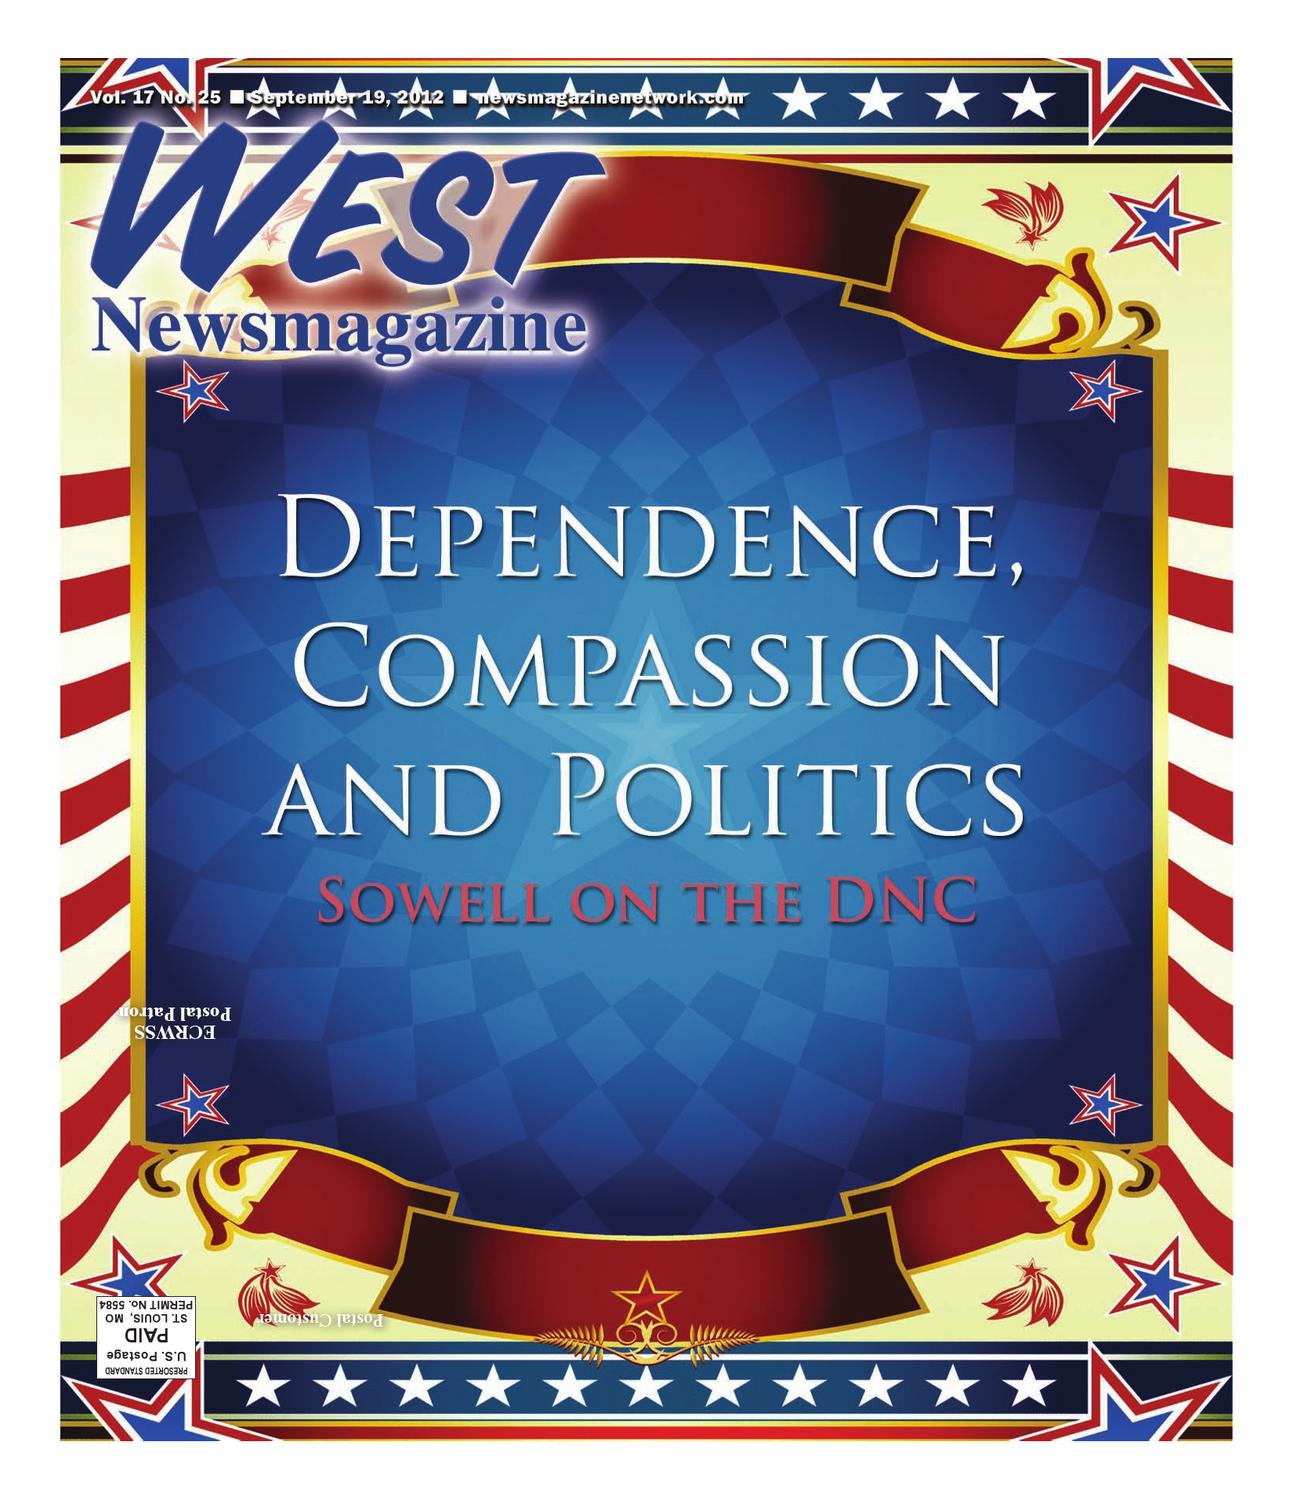 WEST_091912 by Newsmagazine Network - issuu